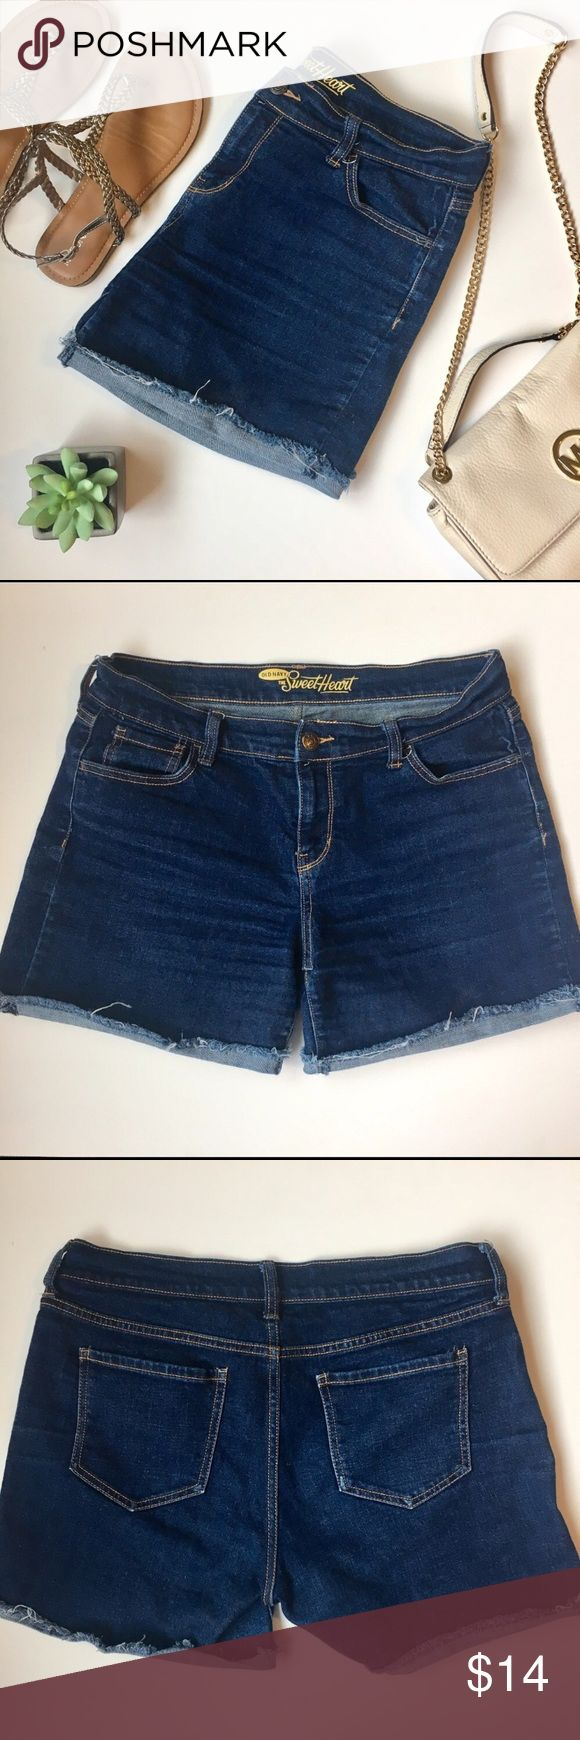 Old Navy The SweetHeart Cut-off Jean Shorts Old Navy The SweetHeart Cut-off Jean Denim Shorts   •Size: 6 Regular •Cut-off with cuffed bottom •Like new!  Ships same or next day from a Smoke-Free home! Old Navy Jeans